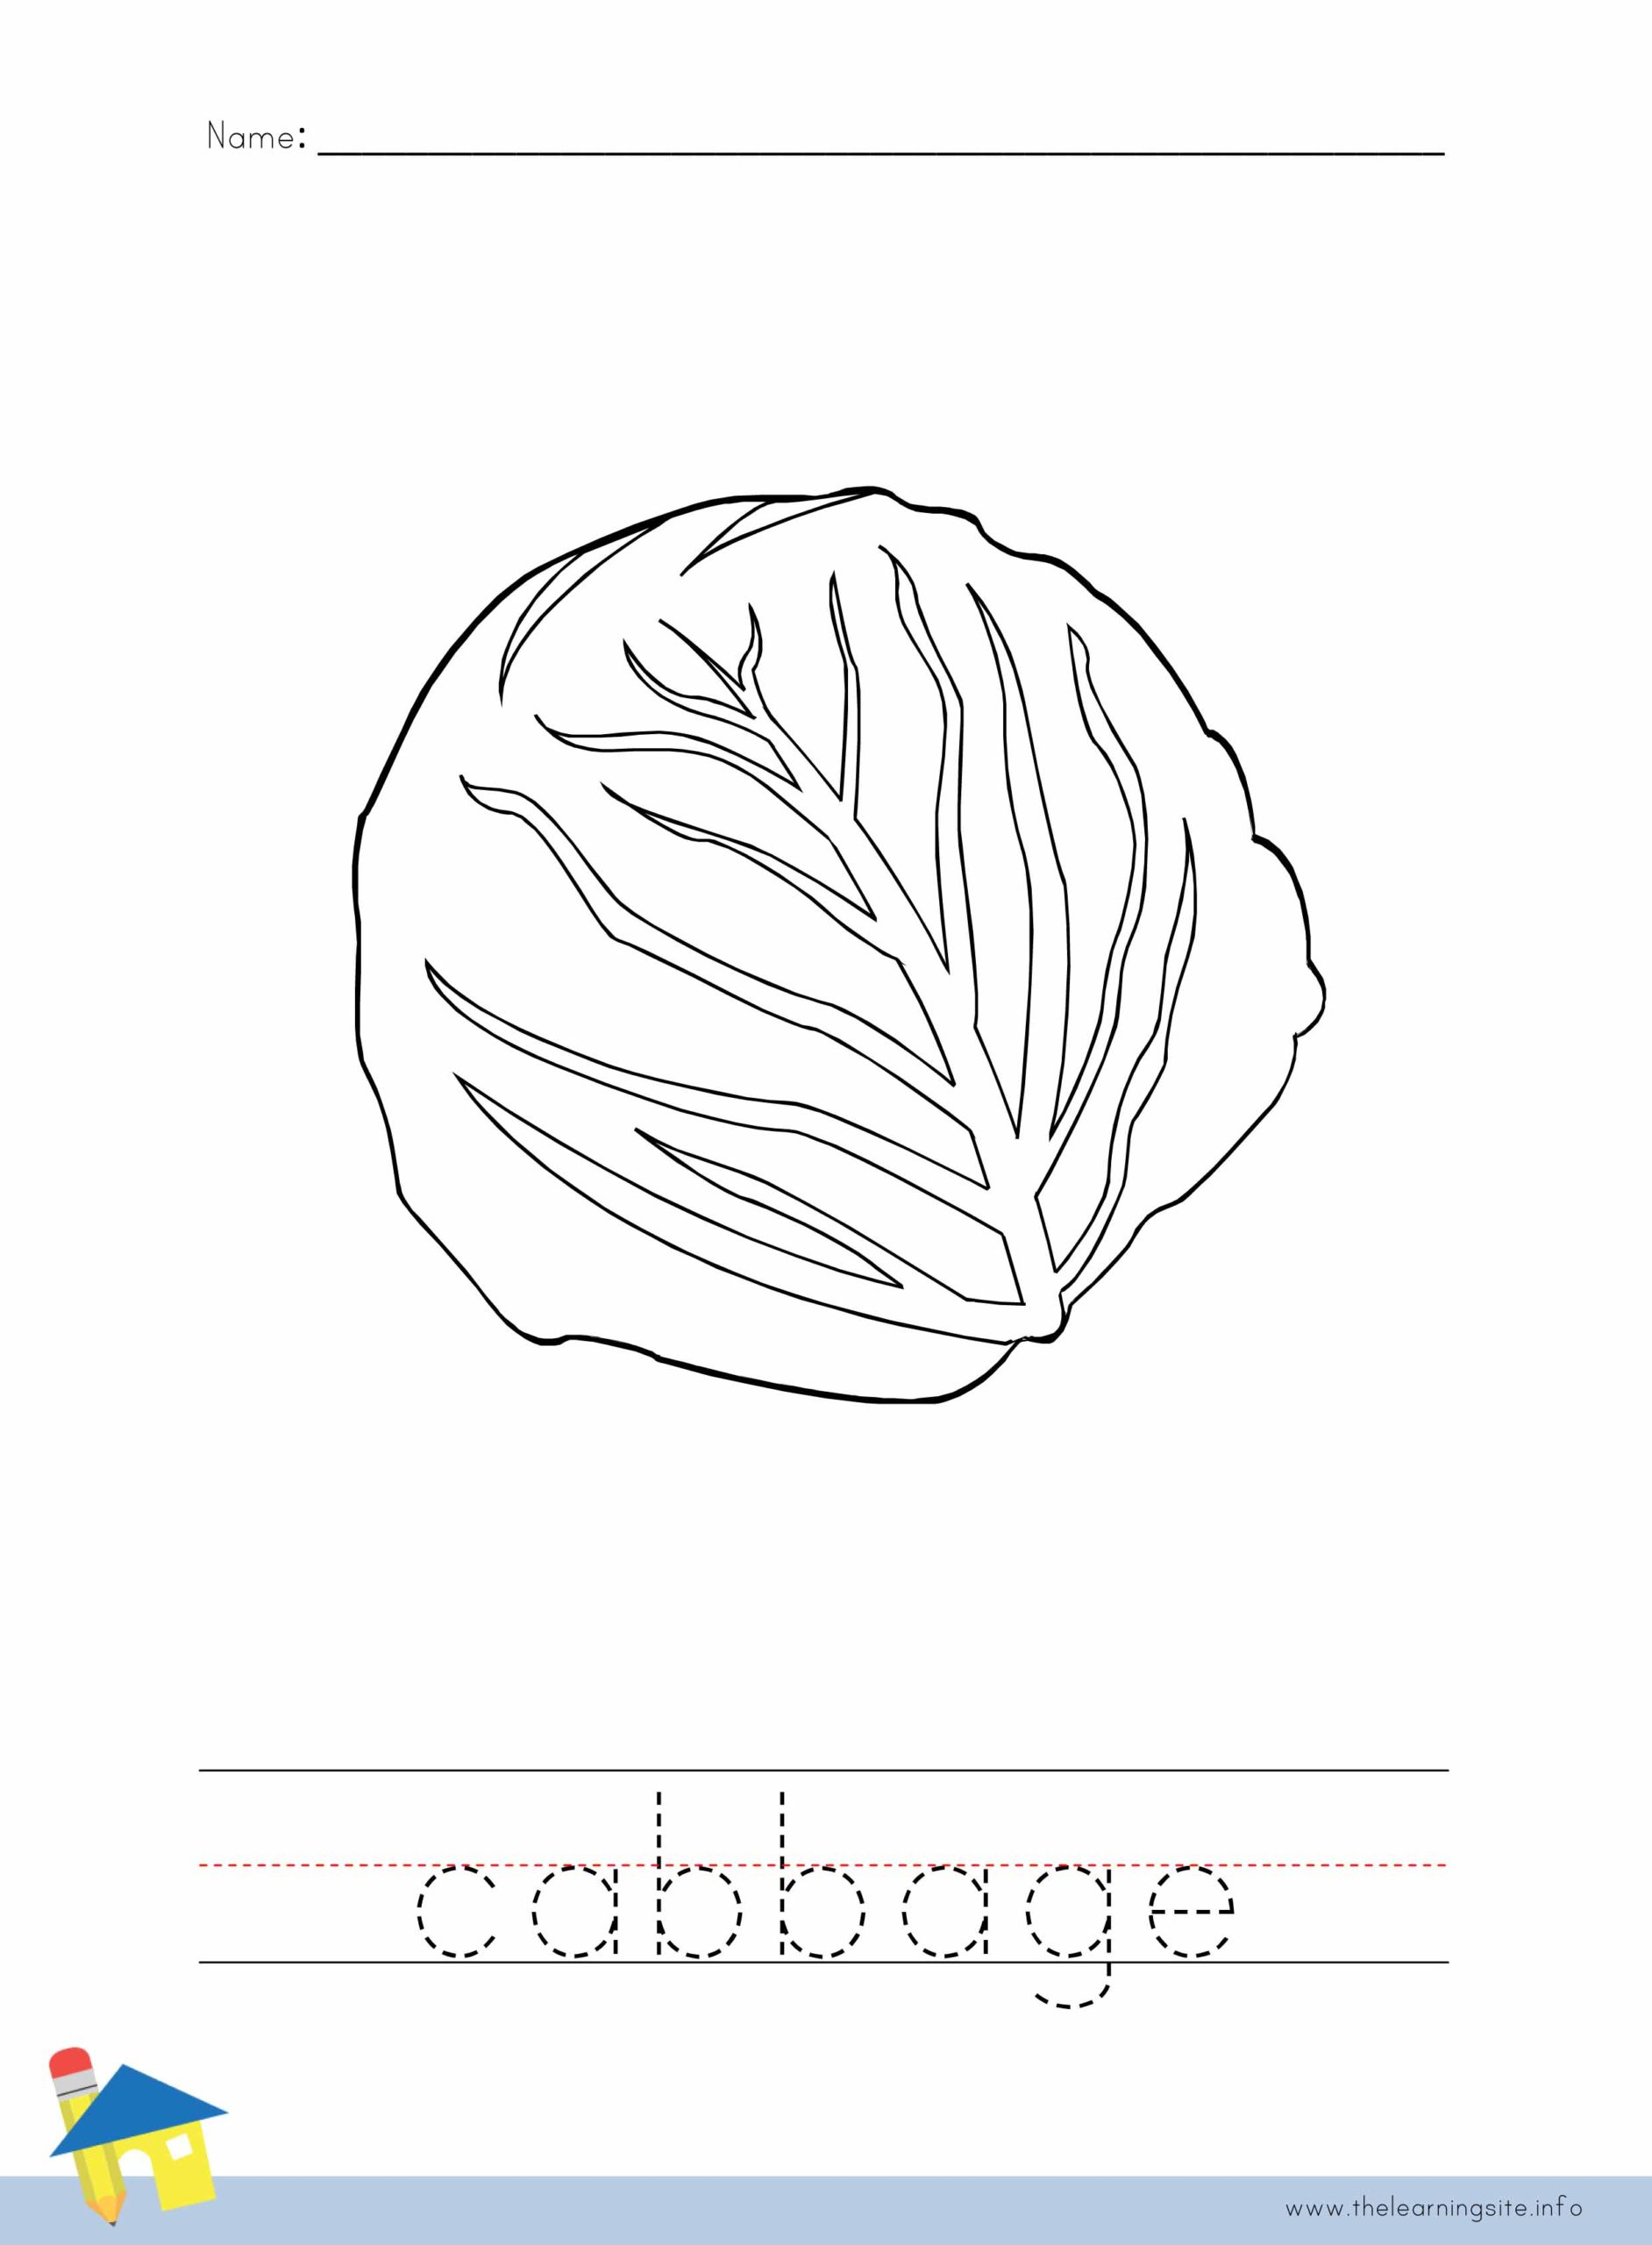 Cabbage Coloring Worksheet The Learning Site